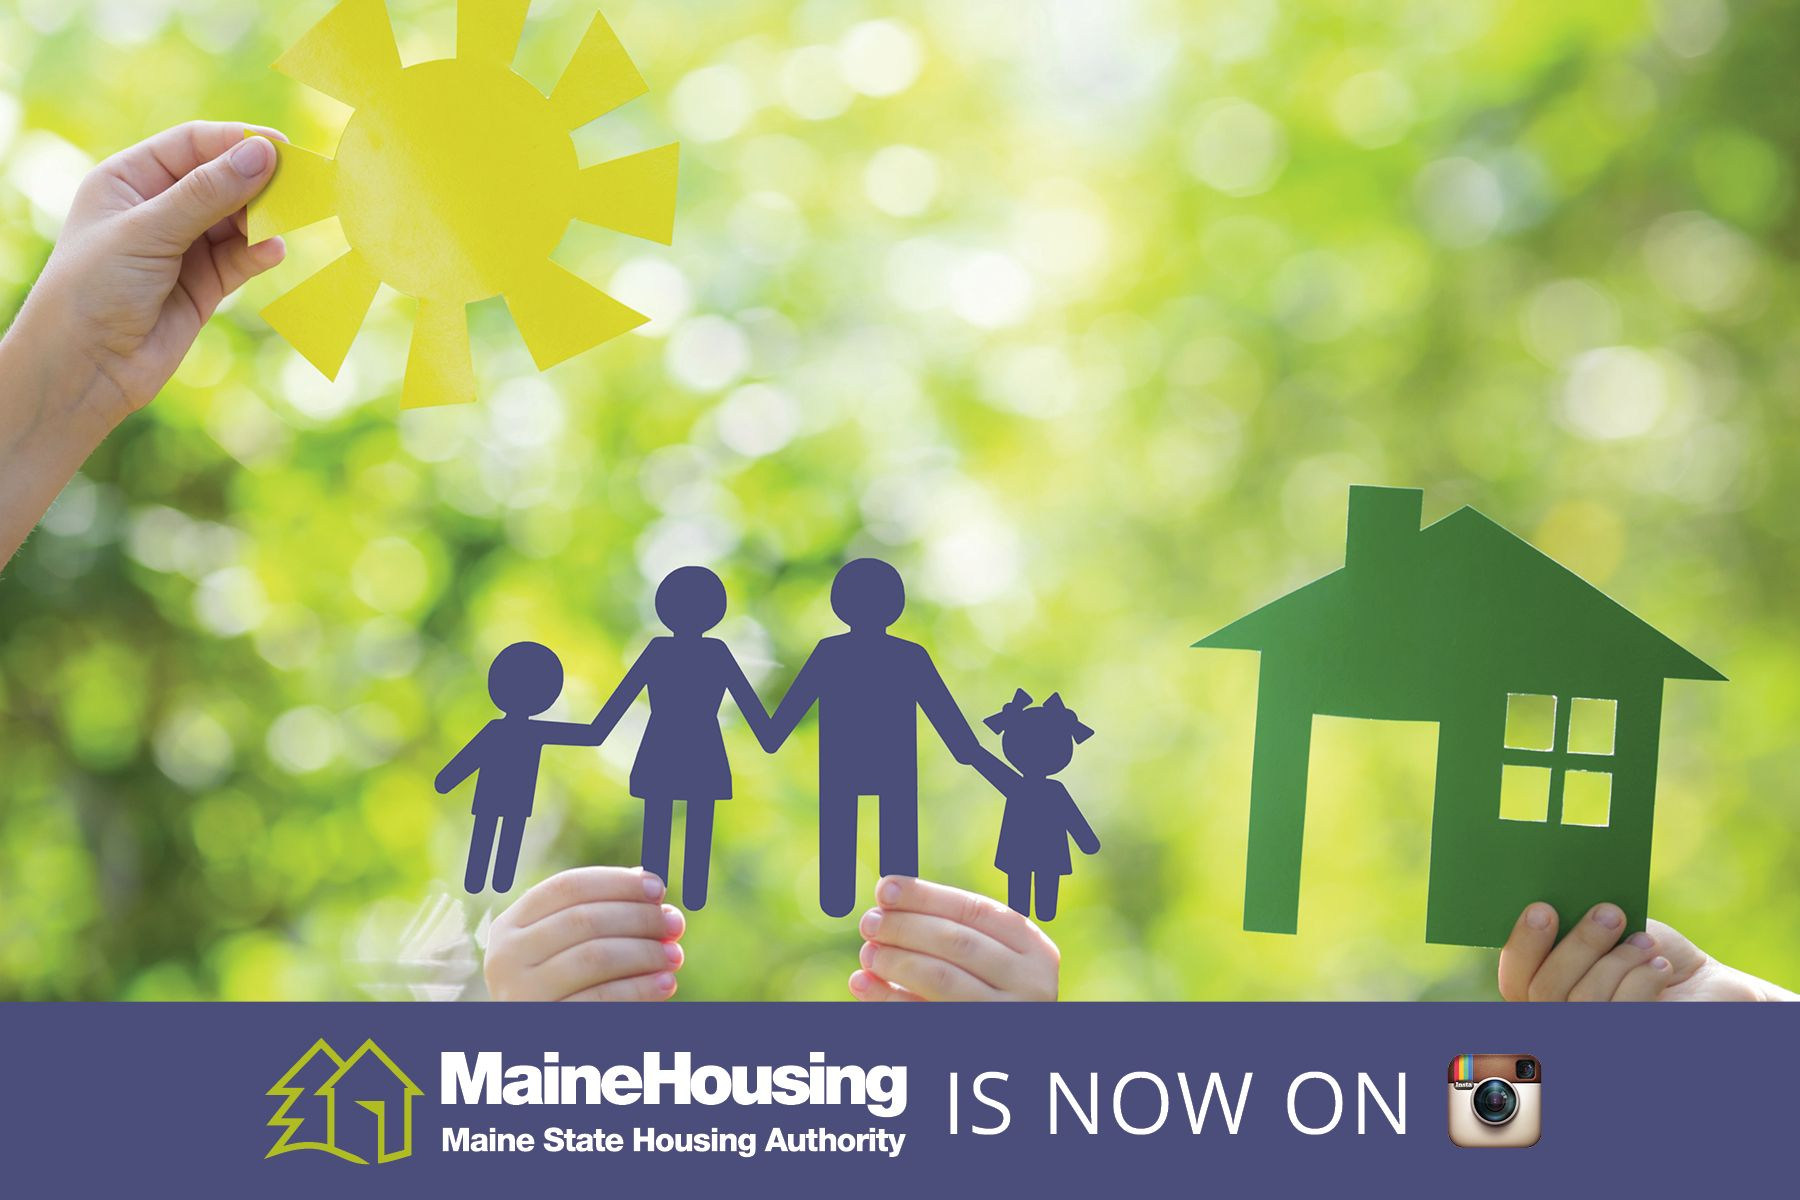 MaineHousing is now on Instagram. Find us at MaineHousing